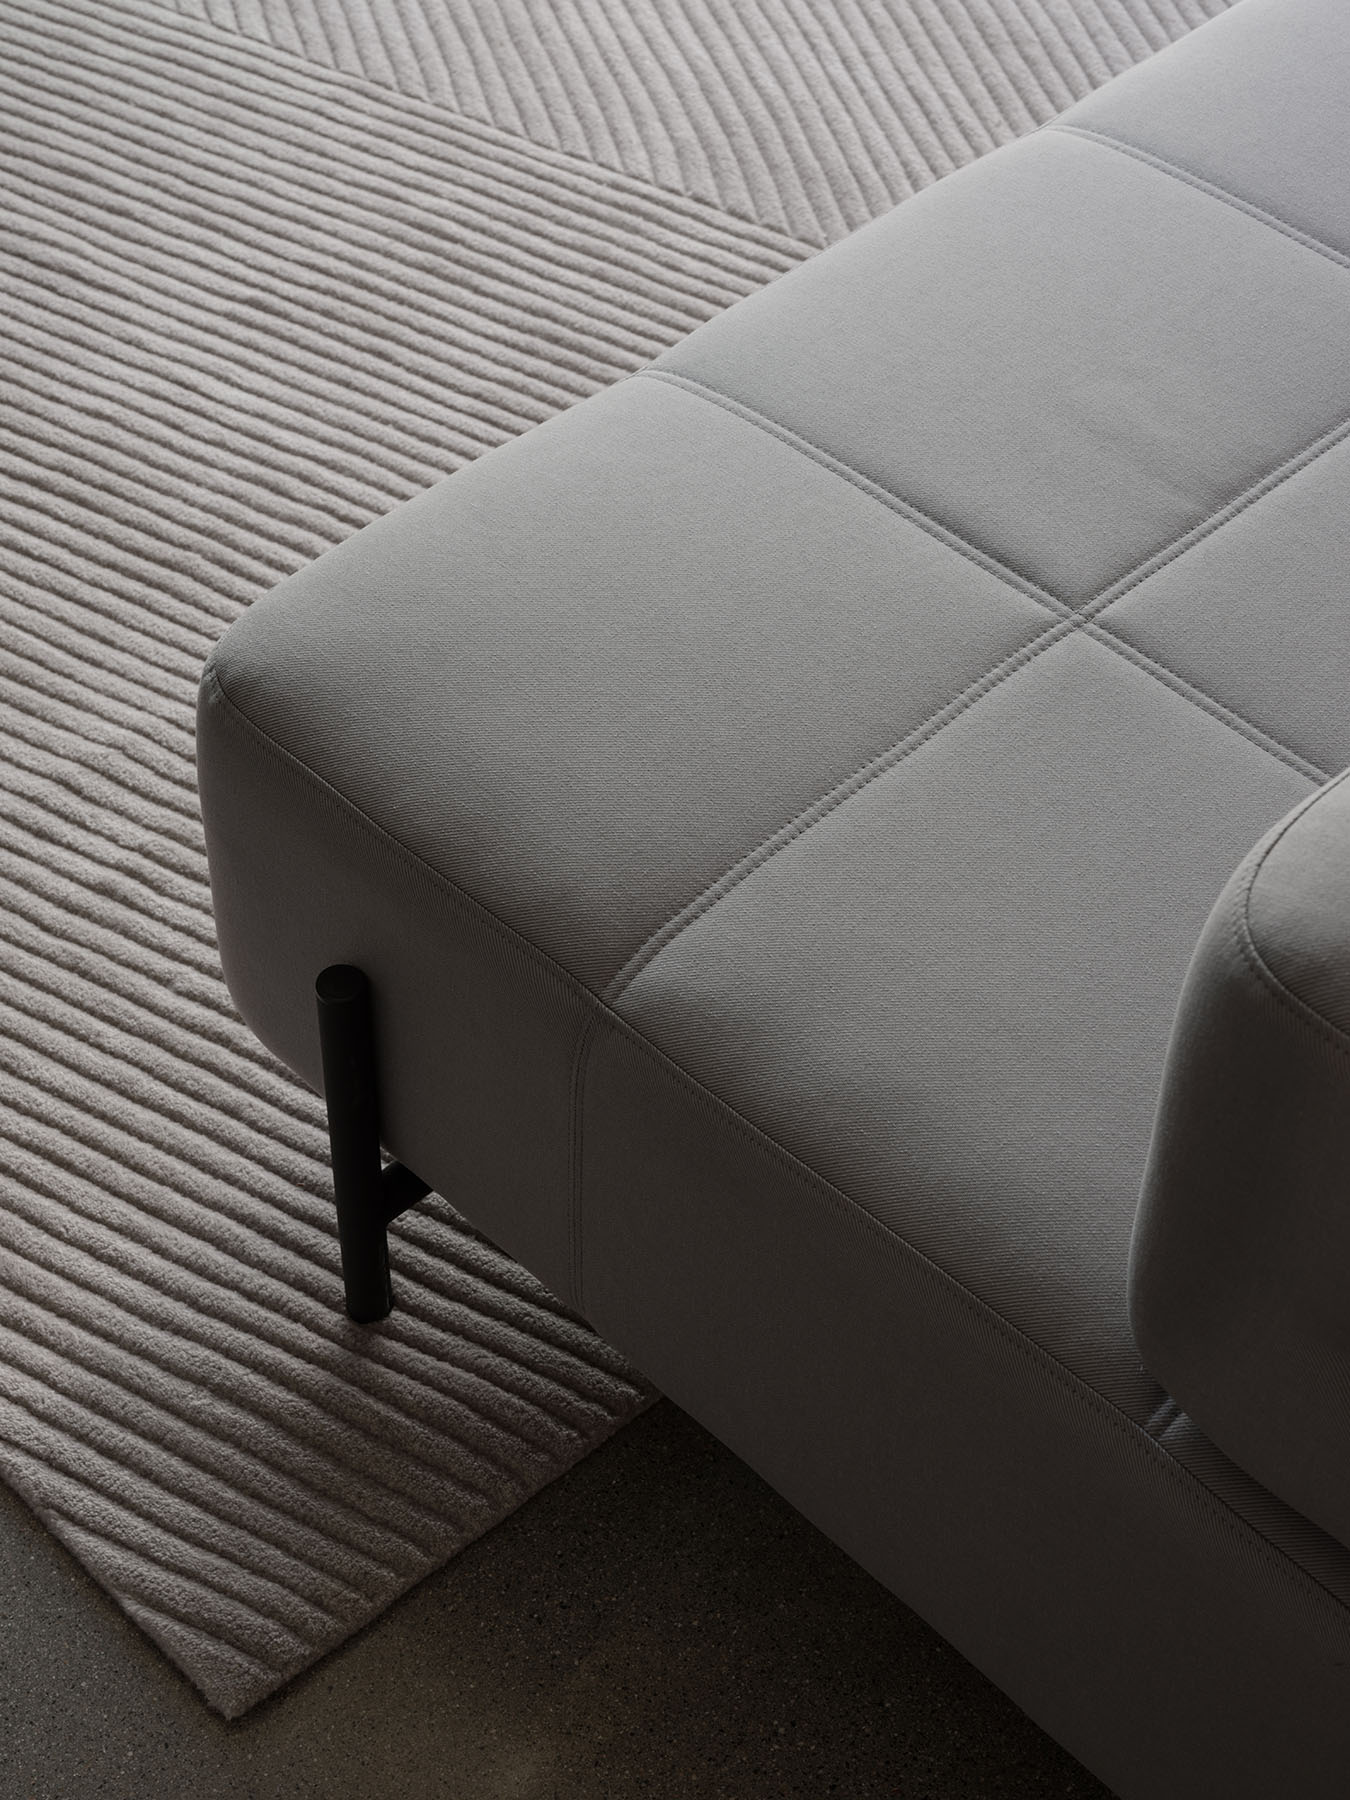 Daybe_sofa_detail_Reflect104_Northern_Photo_Einar_Aslaksen_Low-res